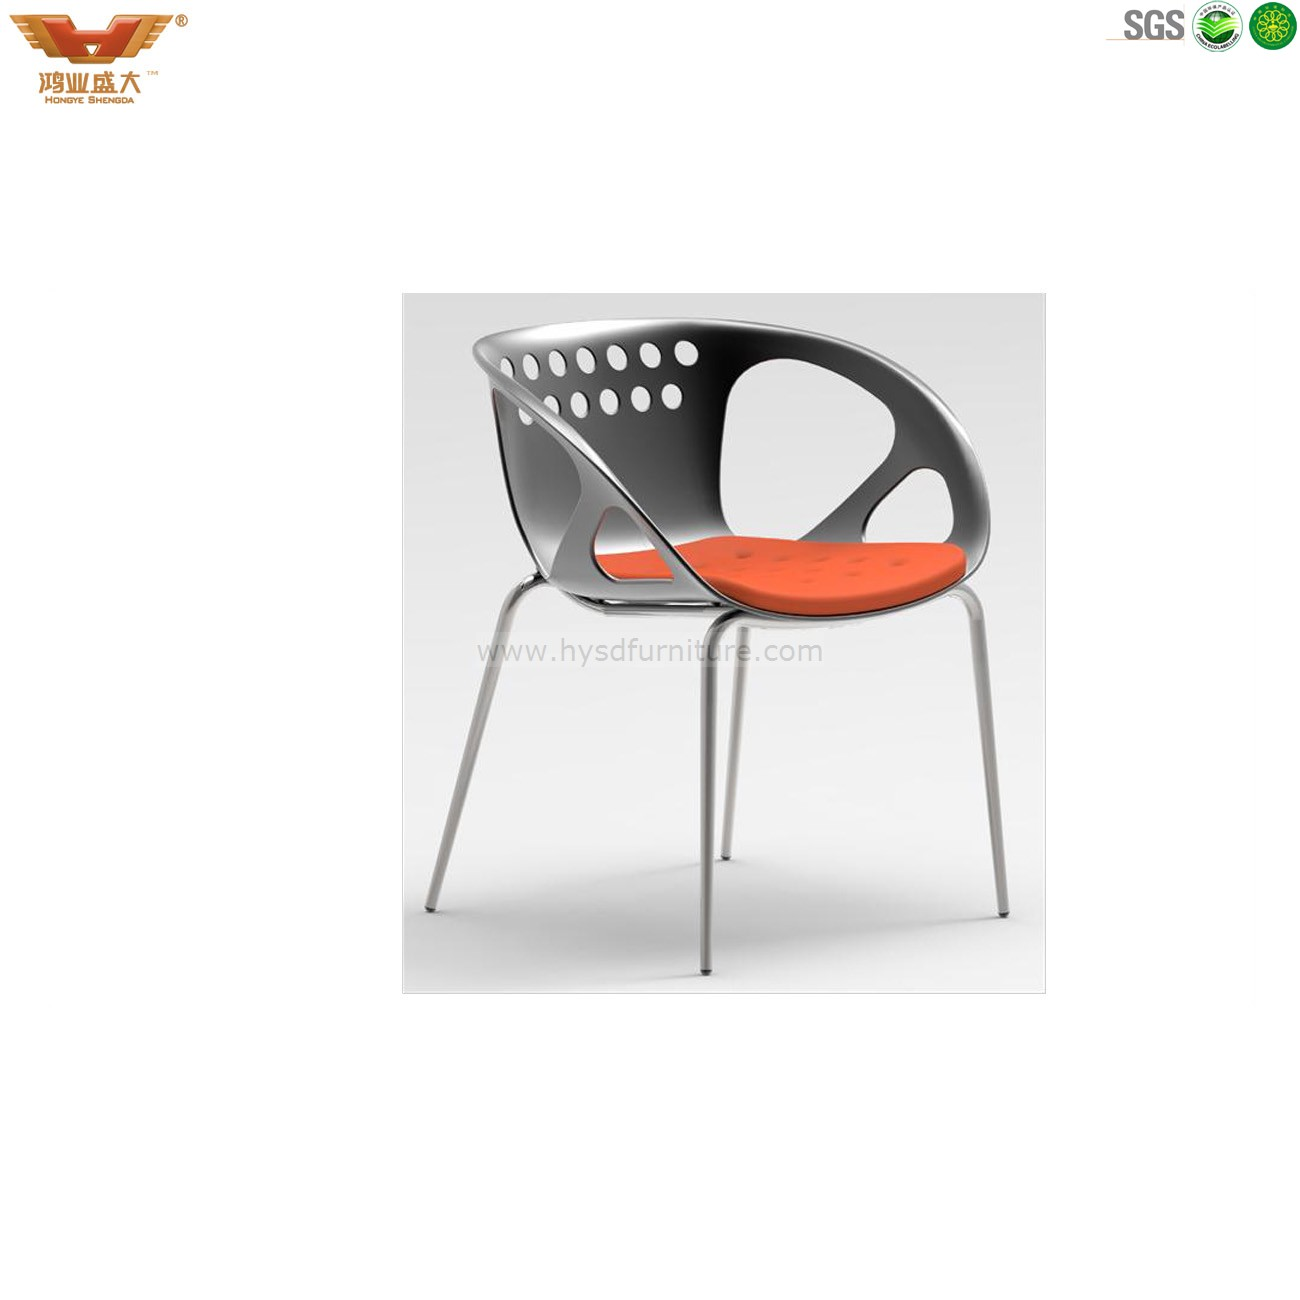 The new style and new design office chair has been released on the line